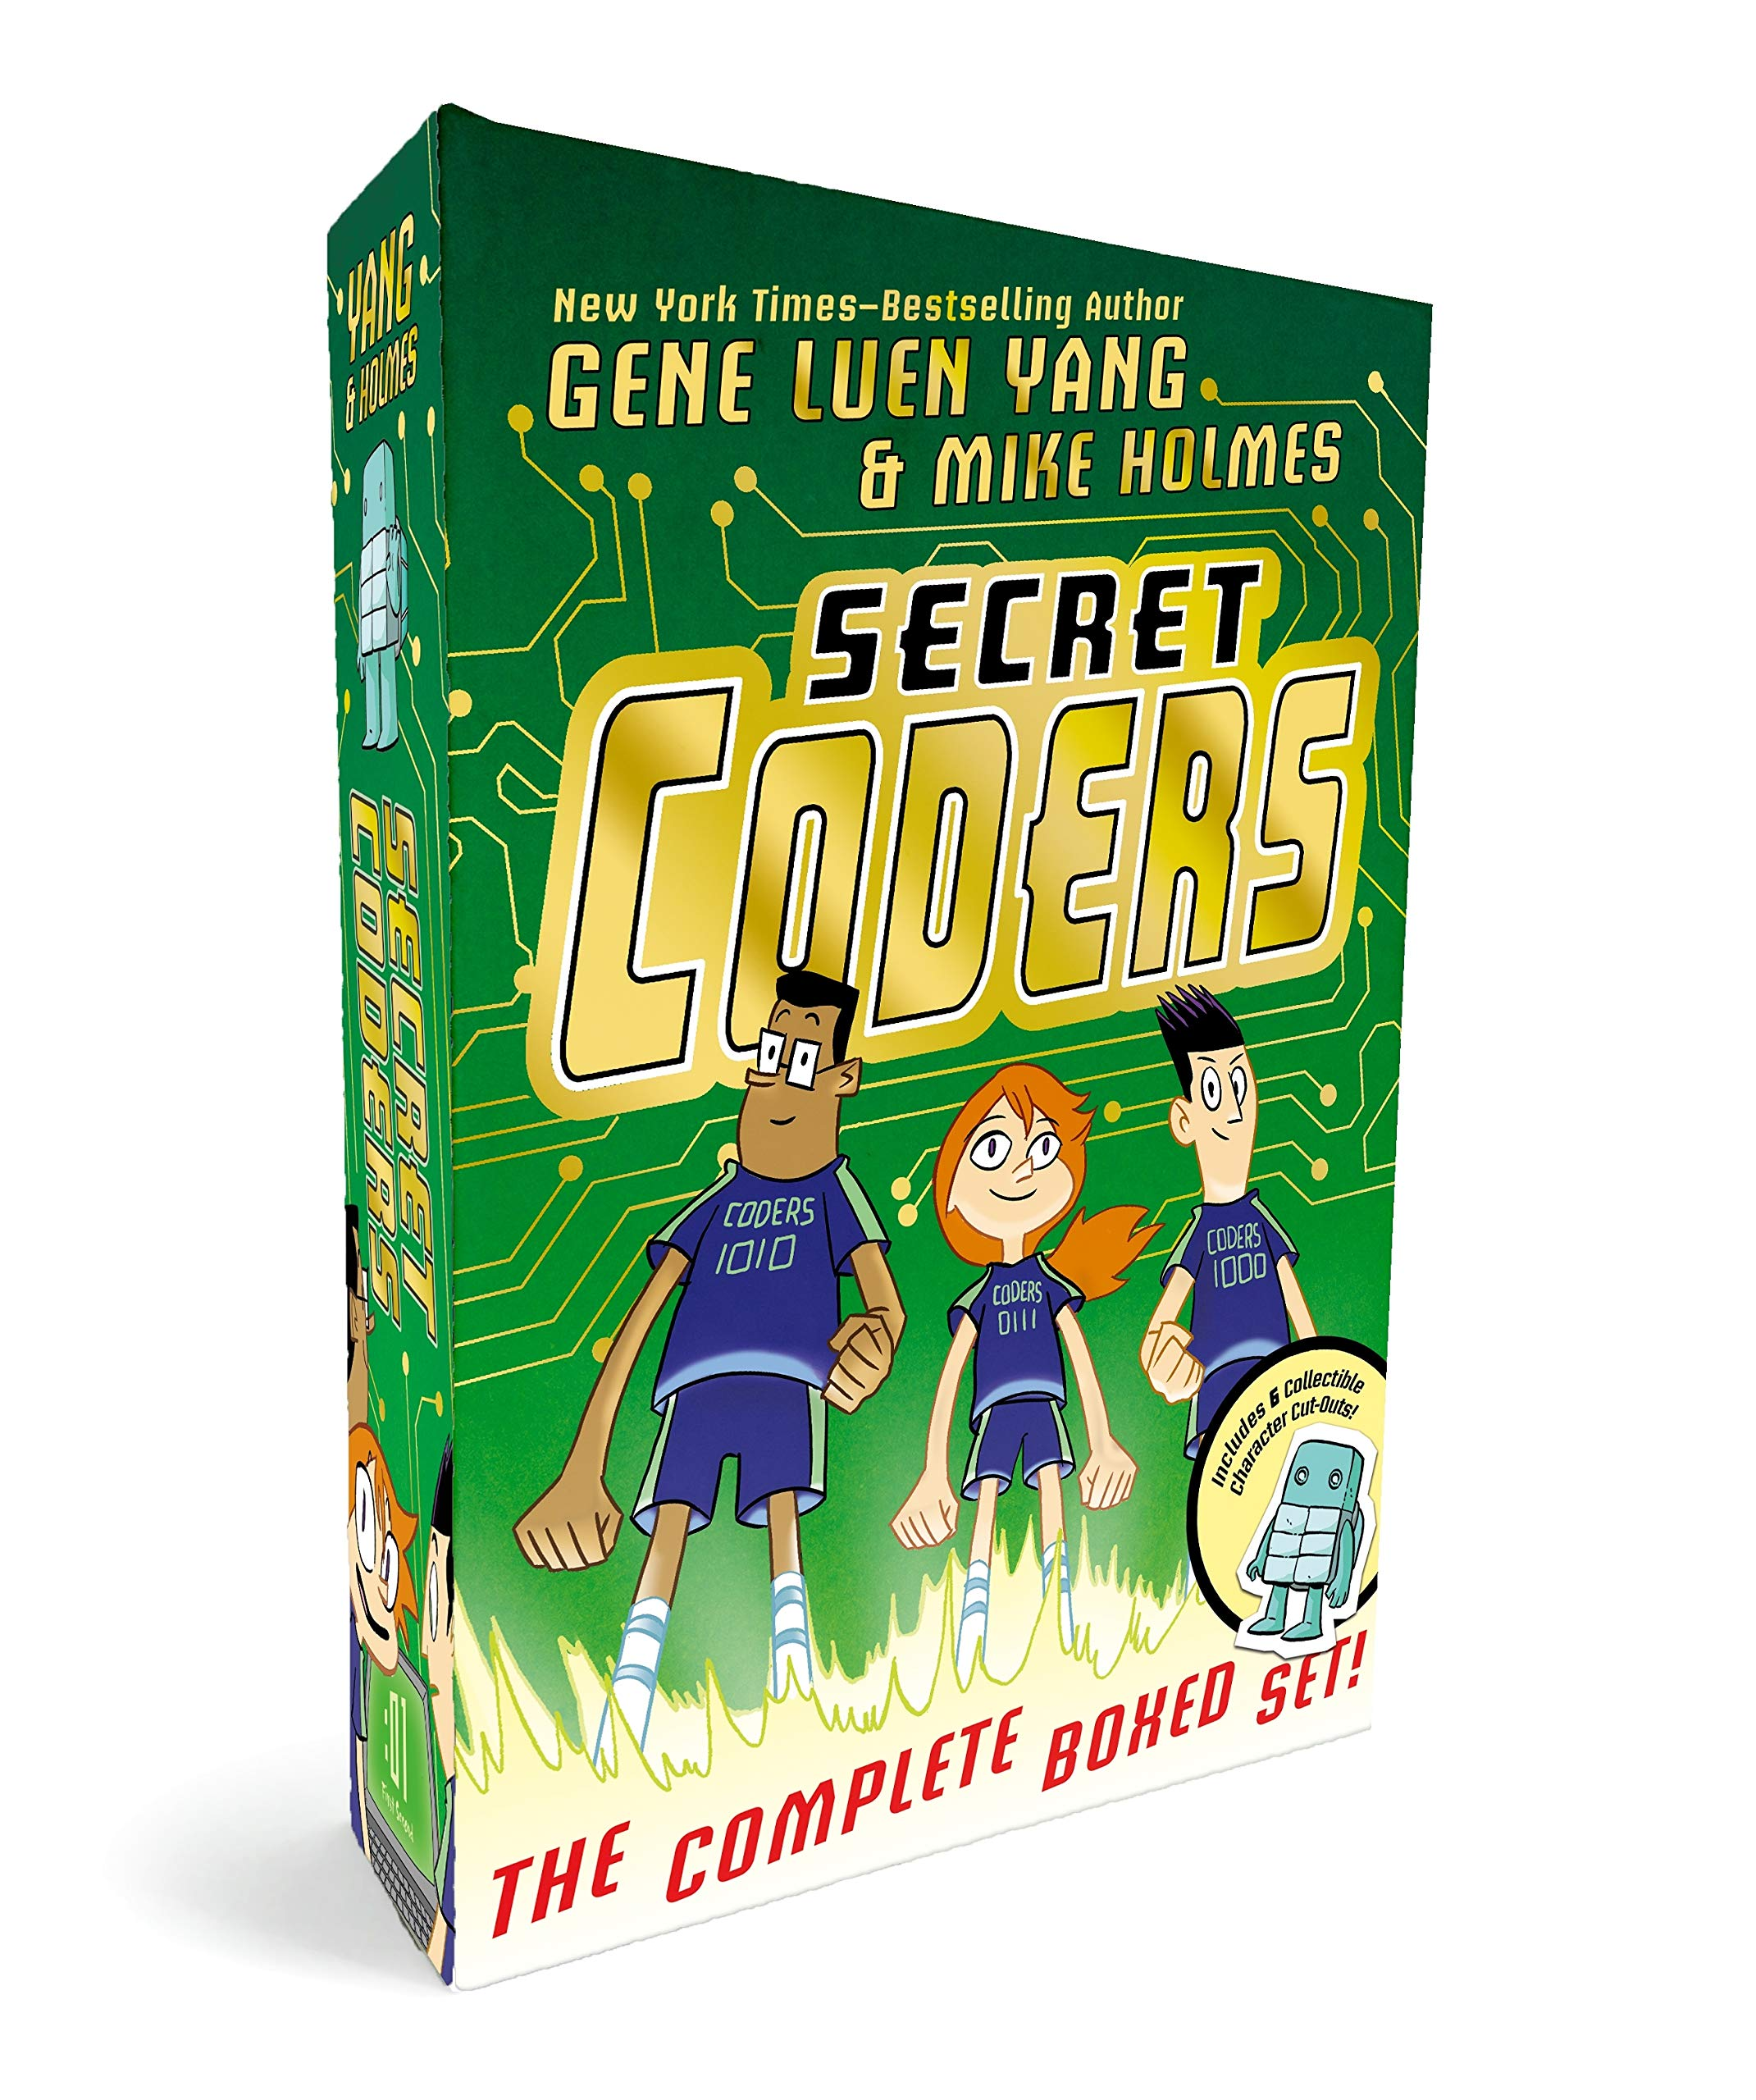 Secret Coders: The Complete Boxed Set: (Secret Coders, Paths & Portals, Secrets & Sequences, Robots & Repeats, Potions & Parameters, Monsters & Modules) by First Second